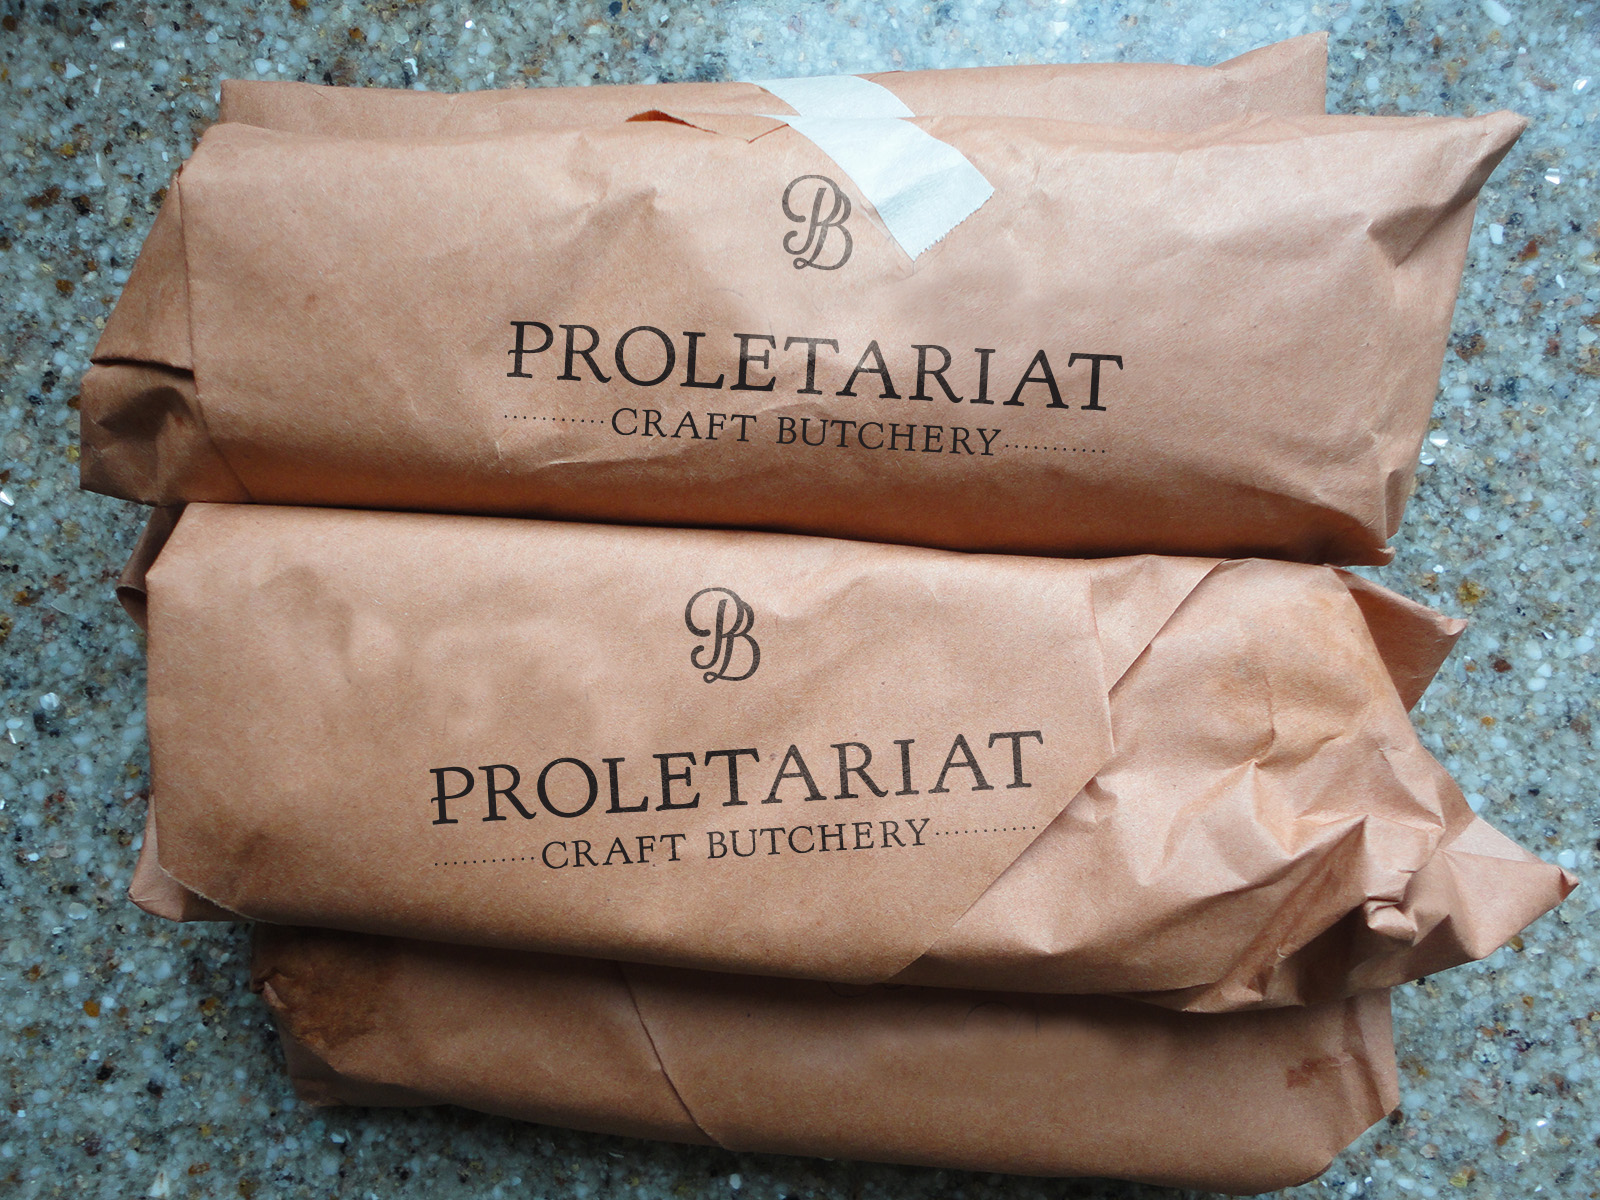 Cuts of meat wrapped in branded butcher paper, featuring a PB logomark and horizontal Proletariat type treatment.